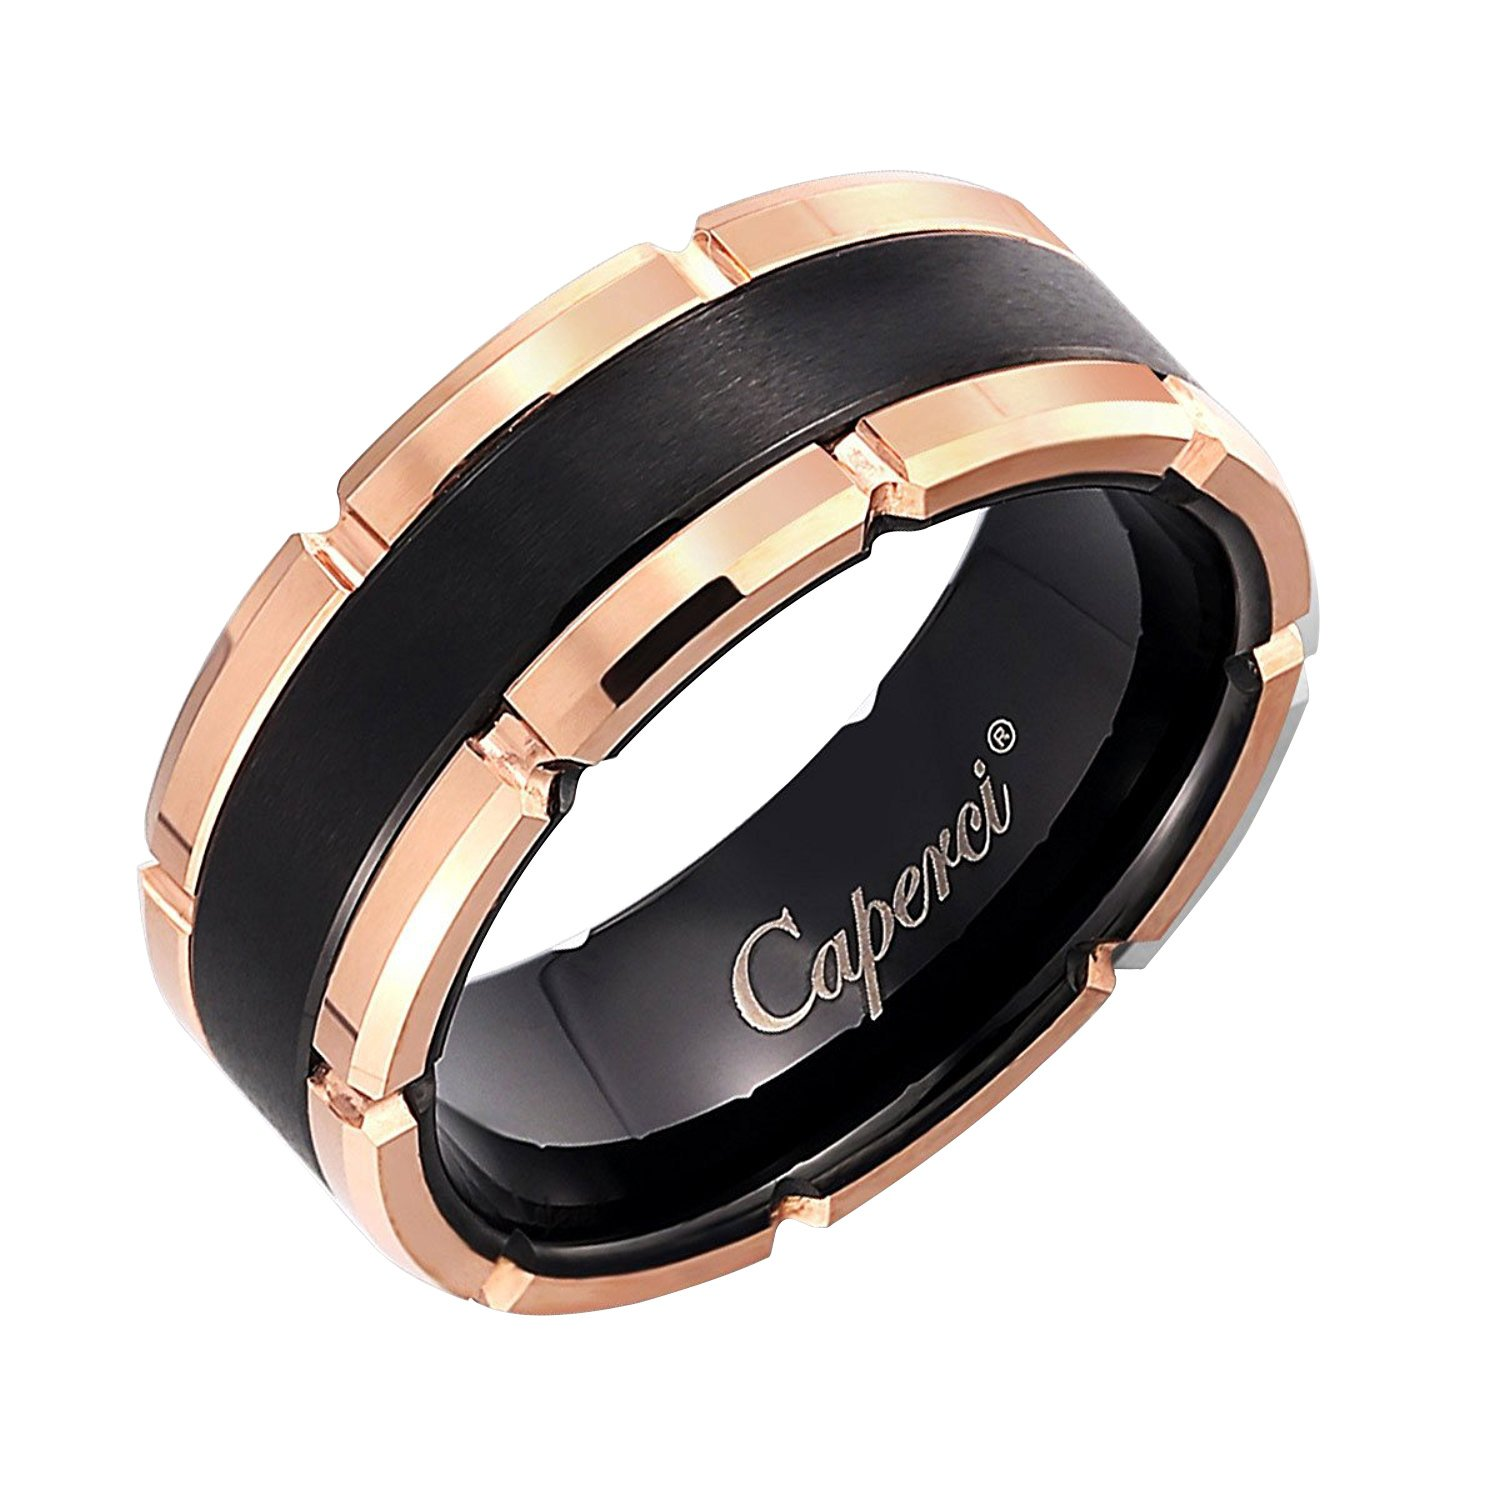 Caperci Men's 8mm Black and Rose Contemporary Tungsten Wedding Band Ring Size 11.5